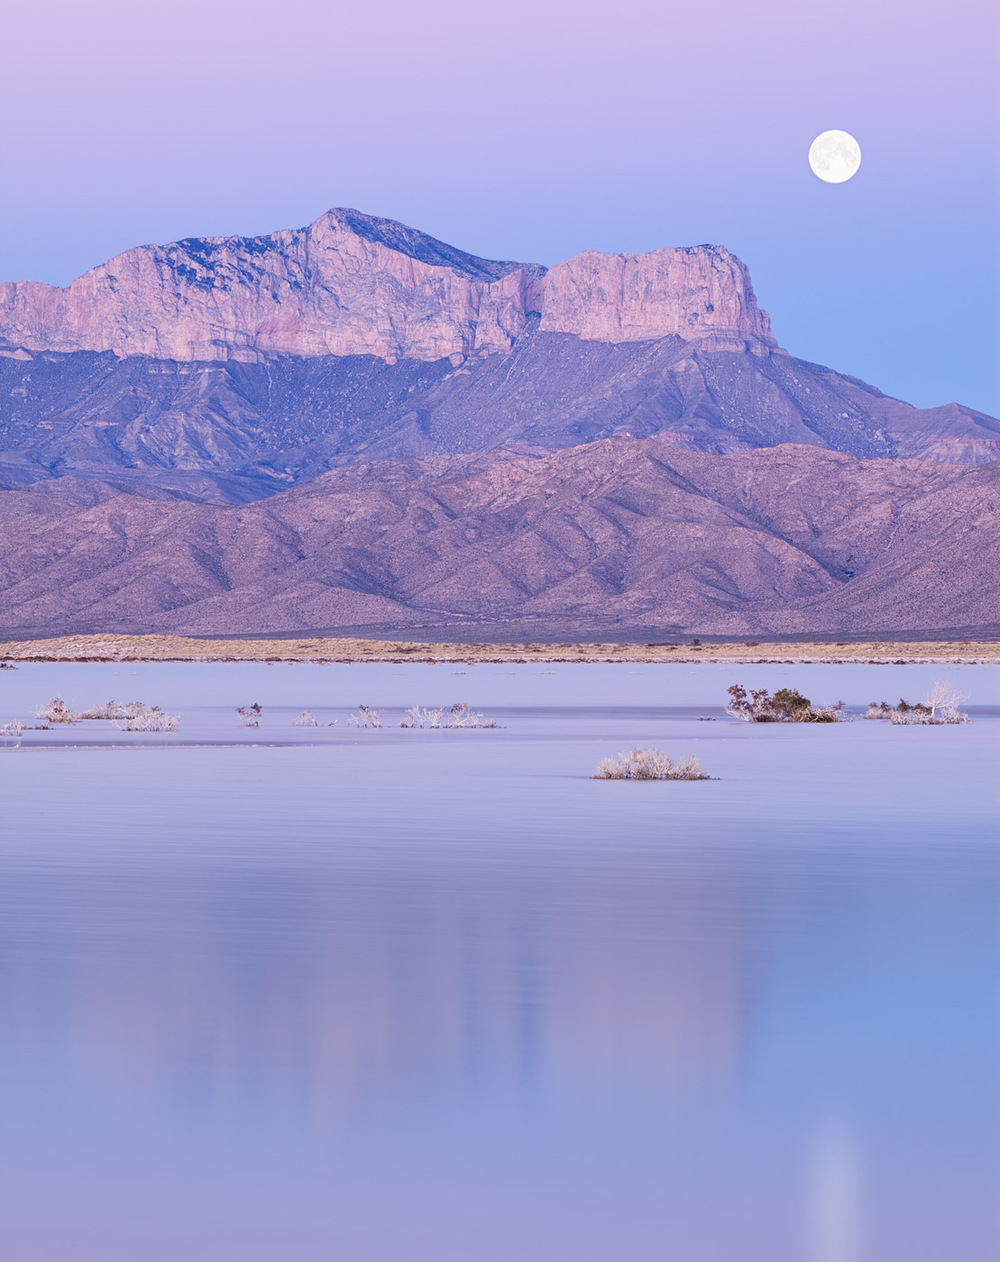 Guadalupe-Mountains-National-Park-ABP-Guadalupe-Mountains_Salt-Flat-Lake.jpg